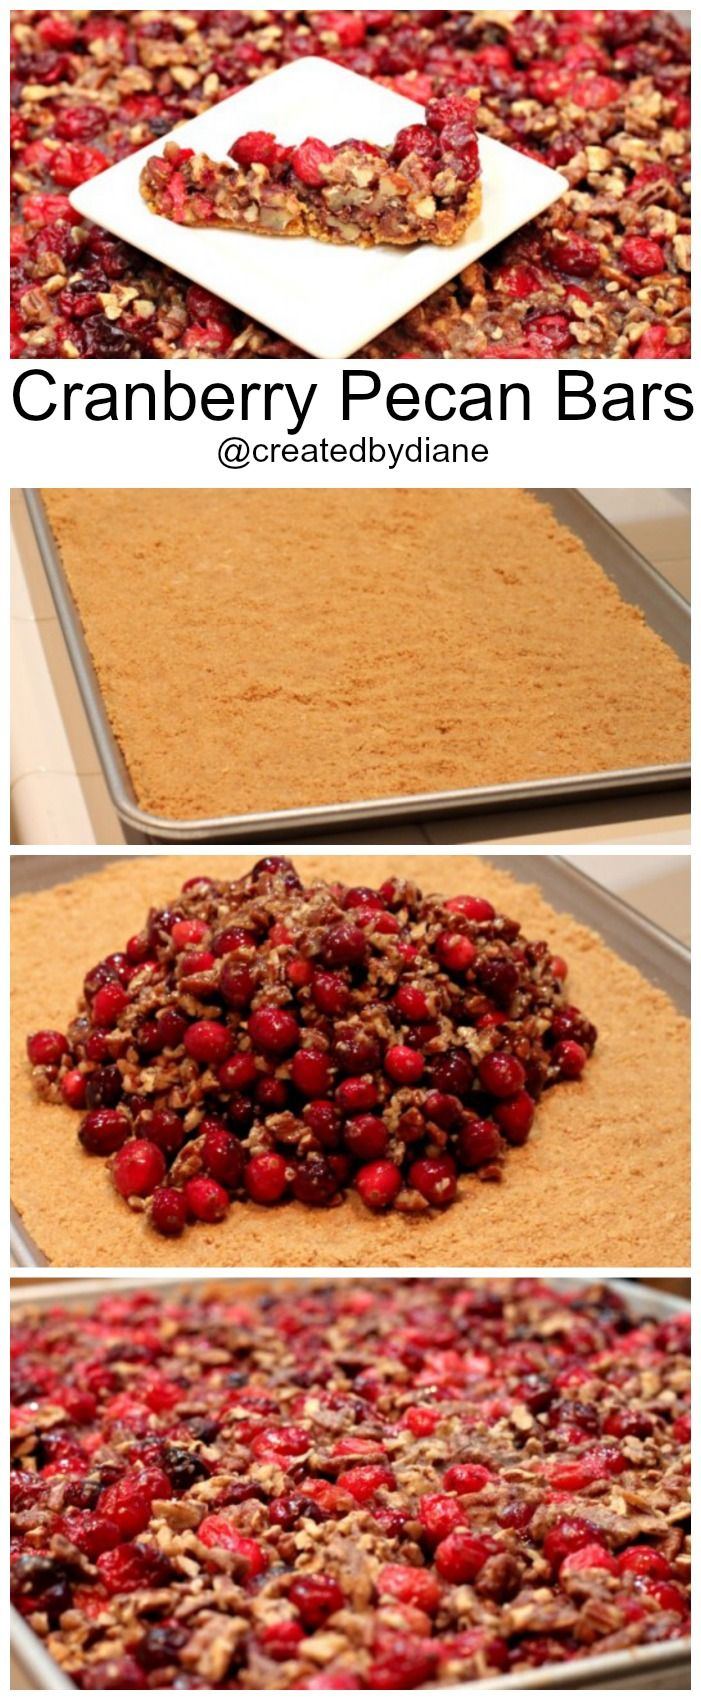 Cranberry Pecan Bars are easy to make and a perfect last minute treat around the holidays to make and bring to parties @creaedbydiane